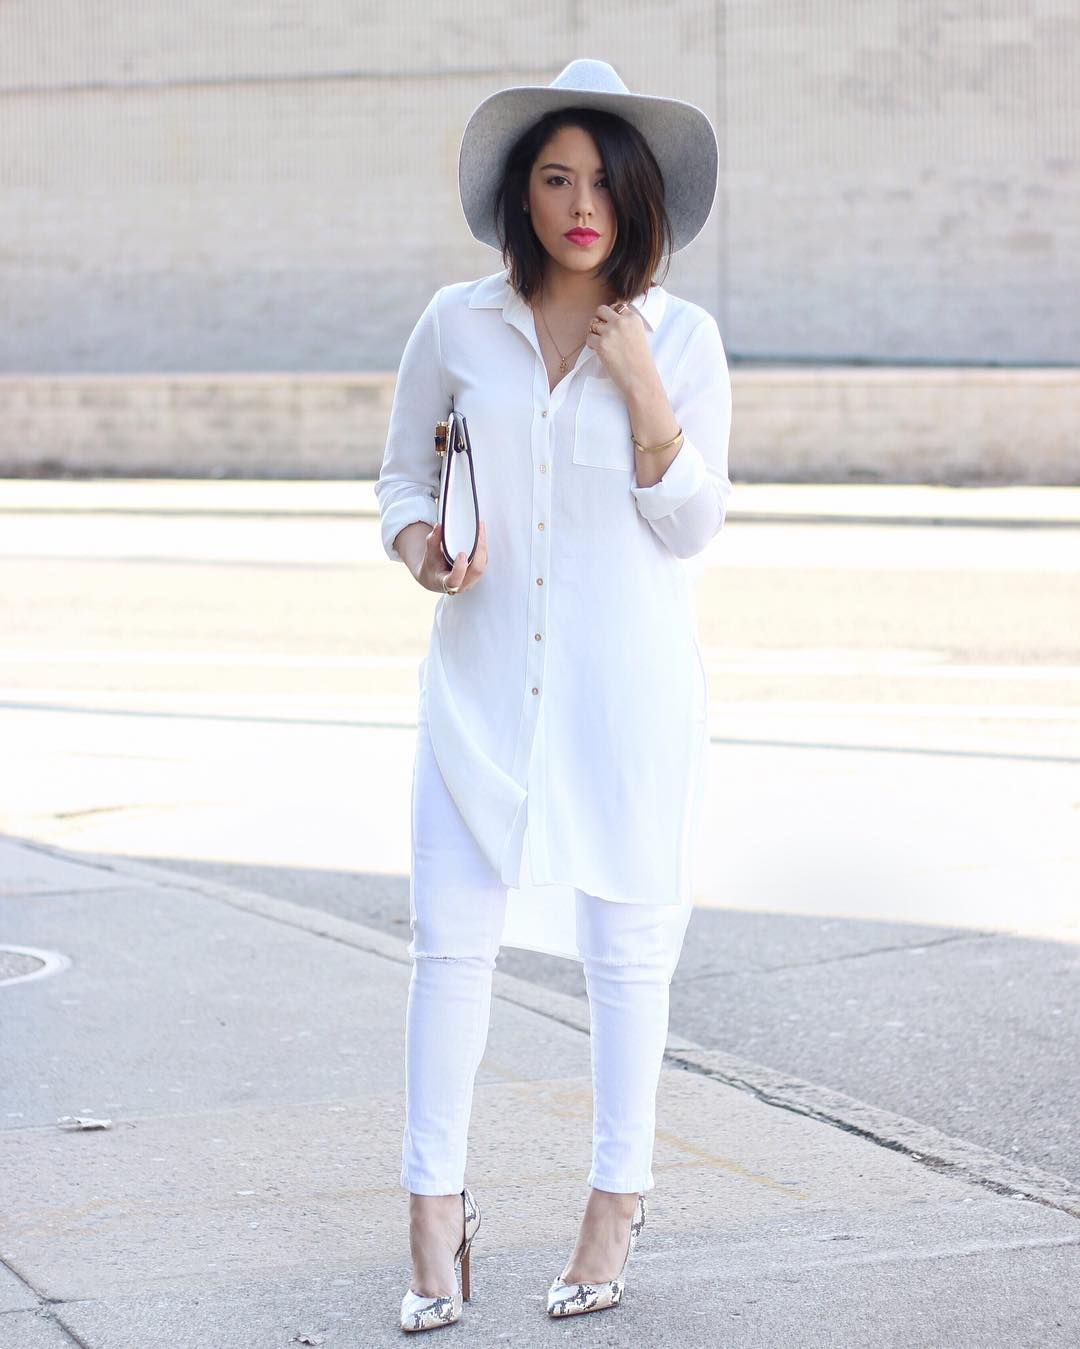 7 Outfits That Prove You Really Do Need a Pair of White Jeans in